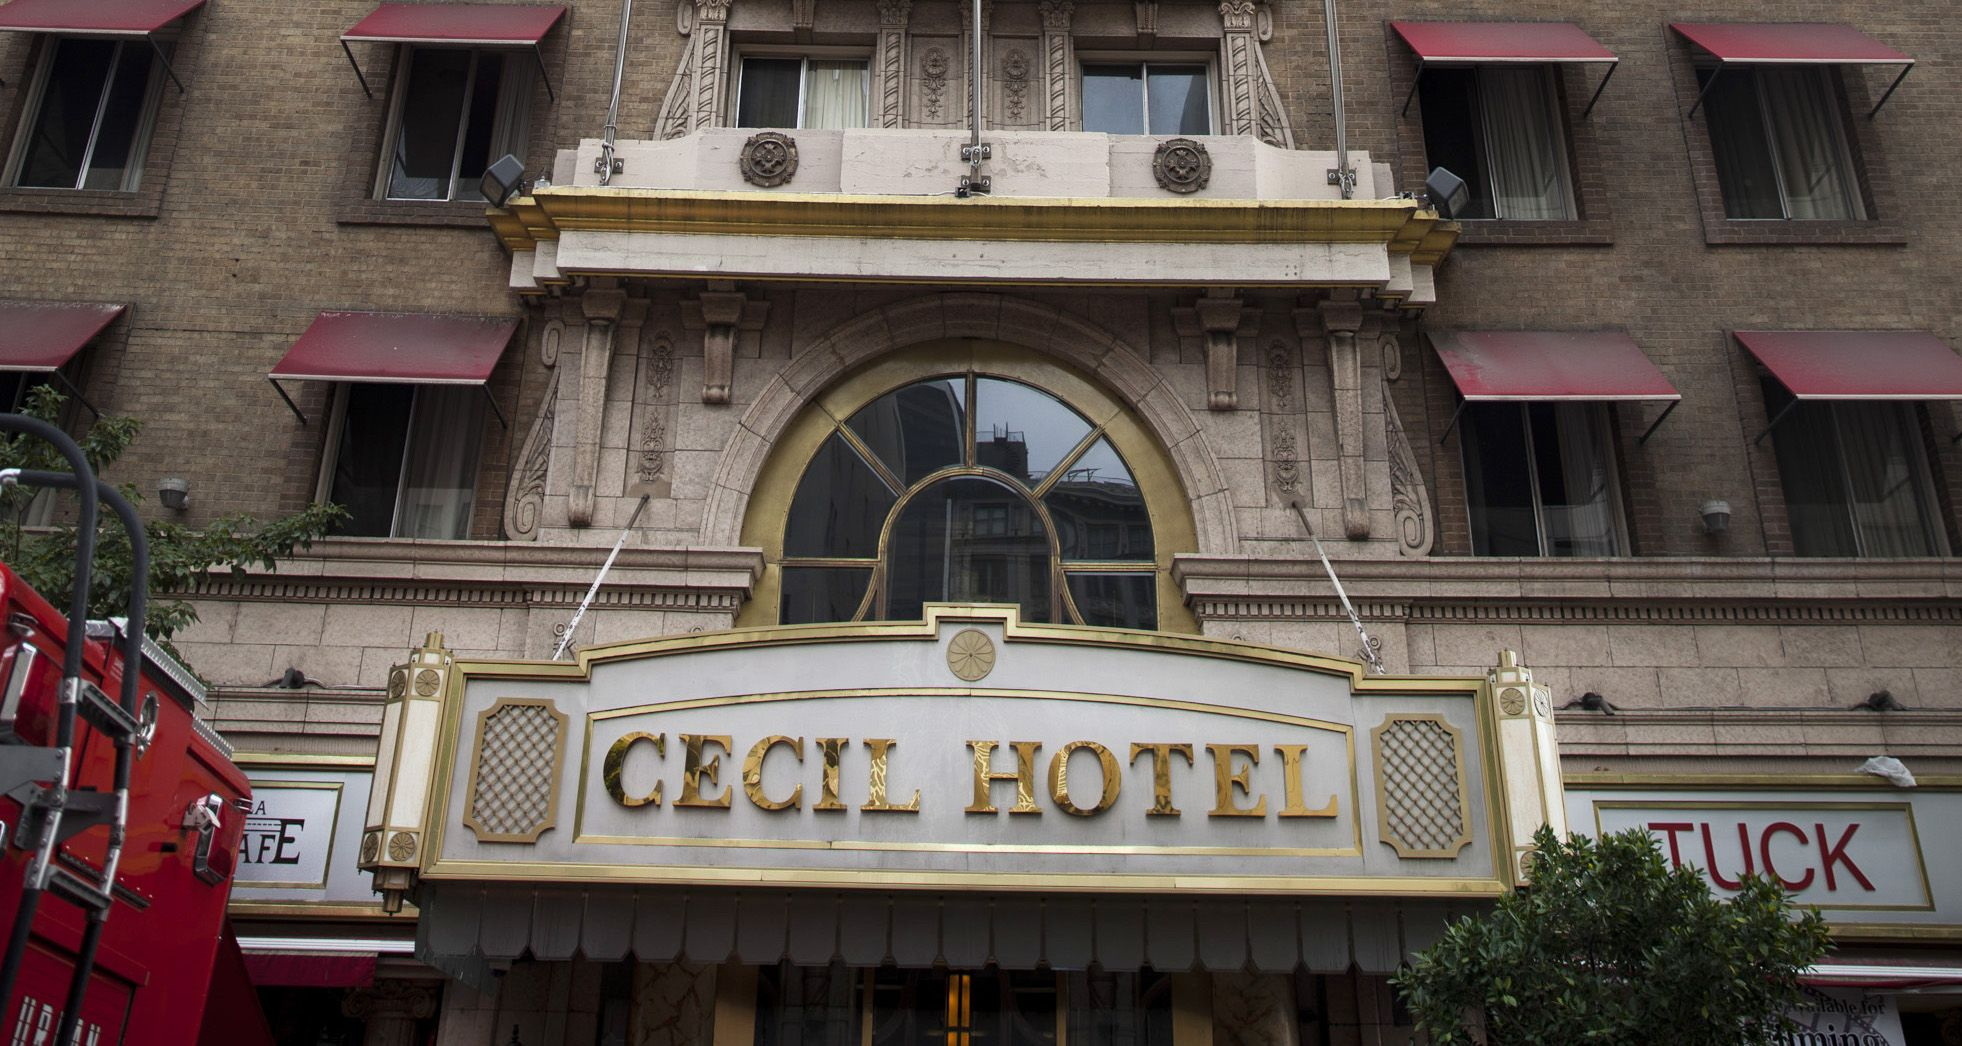 LOS ANGELES, CA -- FEBRUARY 19, 2013-- The Cecil Hotel on Main Street, in downtown Los Angeles, following the discovery of a body in the hotel's water tank, which authorities believe to be that of missing Canadian tourist Elisa Lam, 21, Feb. 19, 2012. Lam was last seen three weeks ago at the Cecil Hotel. (Jay L. Clendenin / Los Angeles Times)